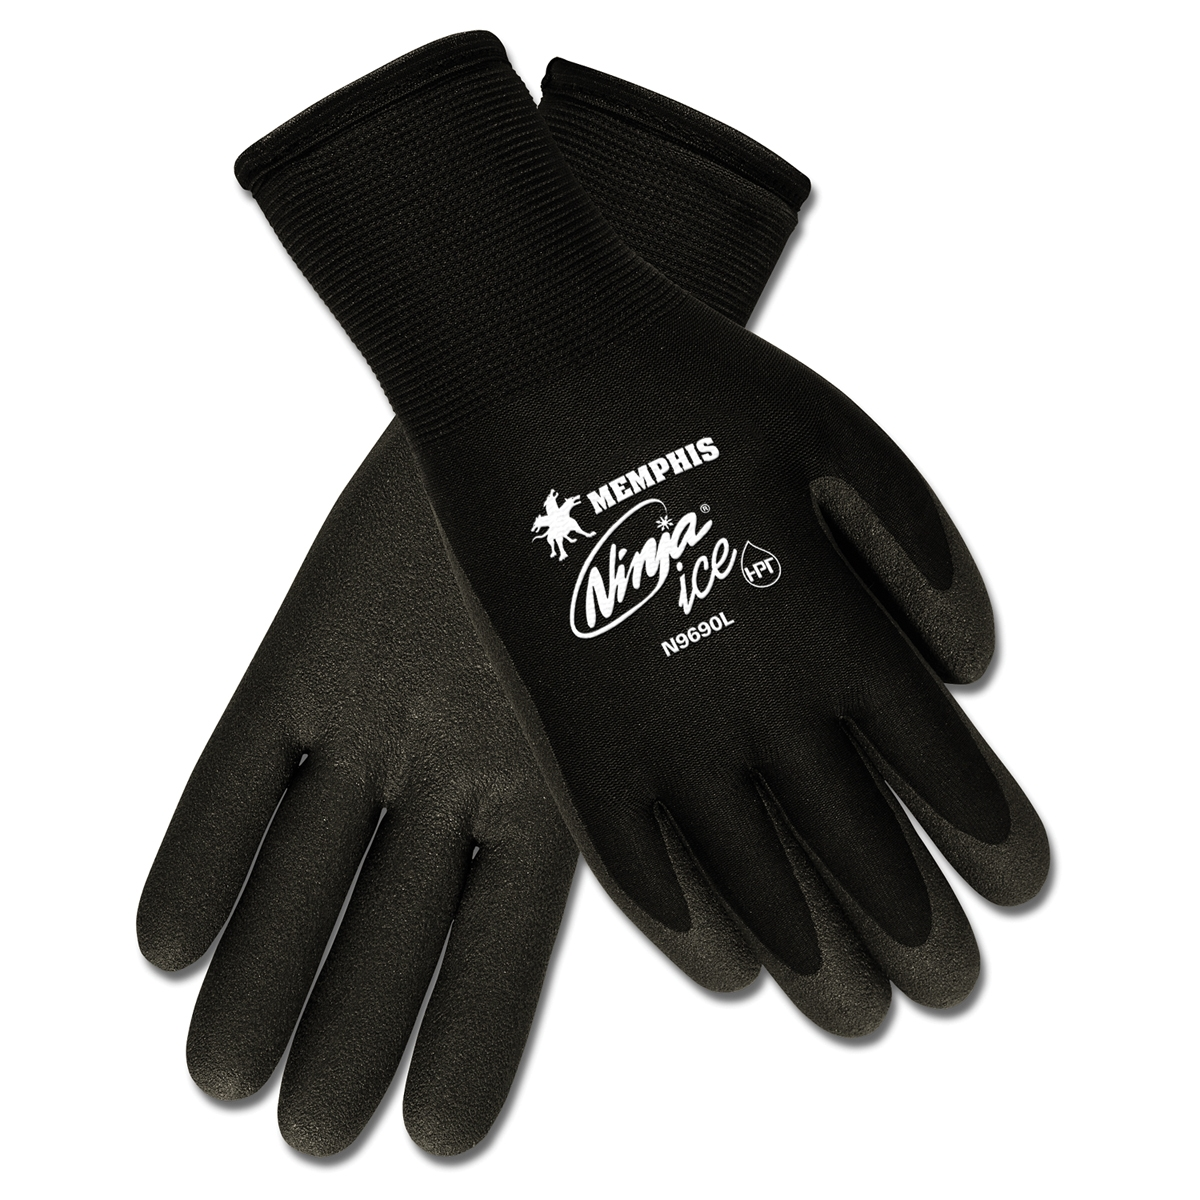 N9690 : MCR Safety Ninja Ice Gloves